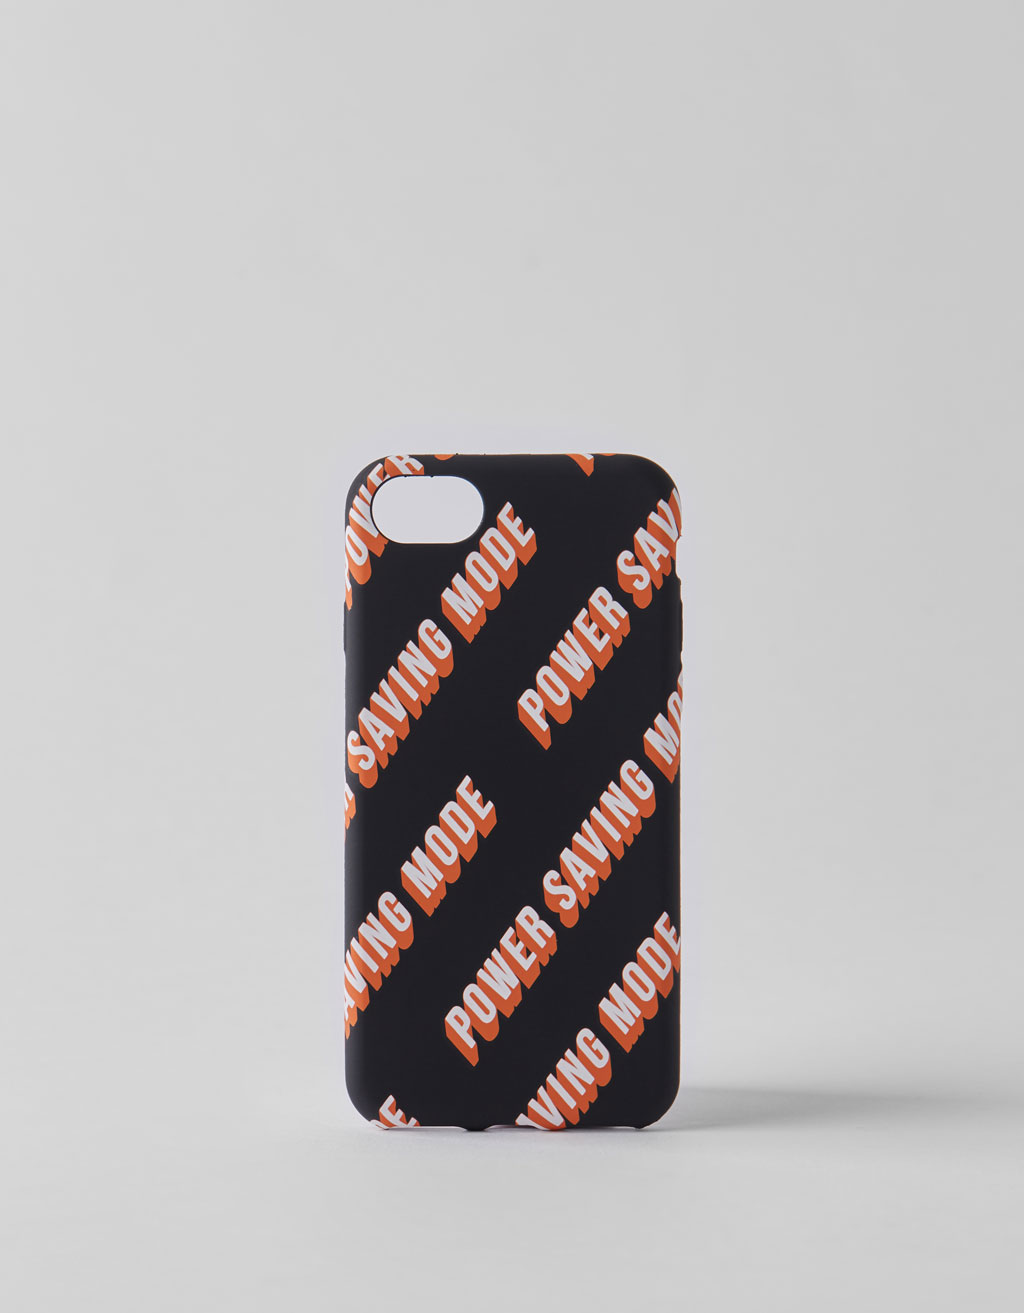 Carcasa estampada iPhone 6/7/8